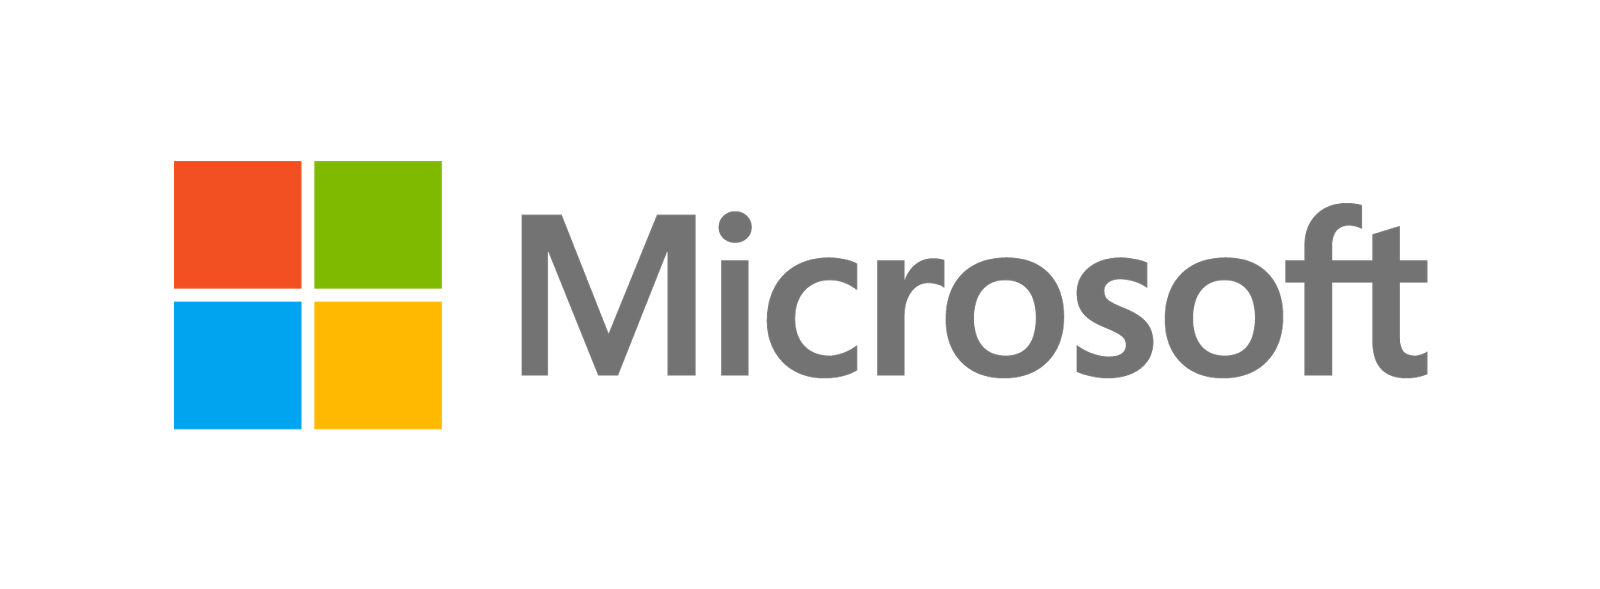 Microsoft releases quarterly results (turnover and net profit) increased, reflecting the high level of the products for business and sales of the Office suite.